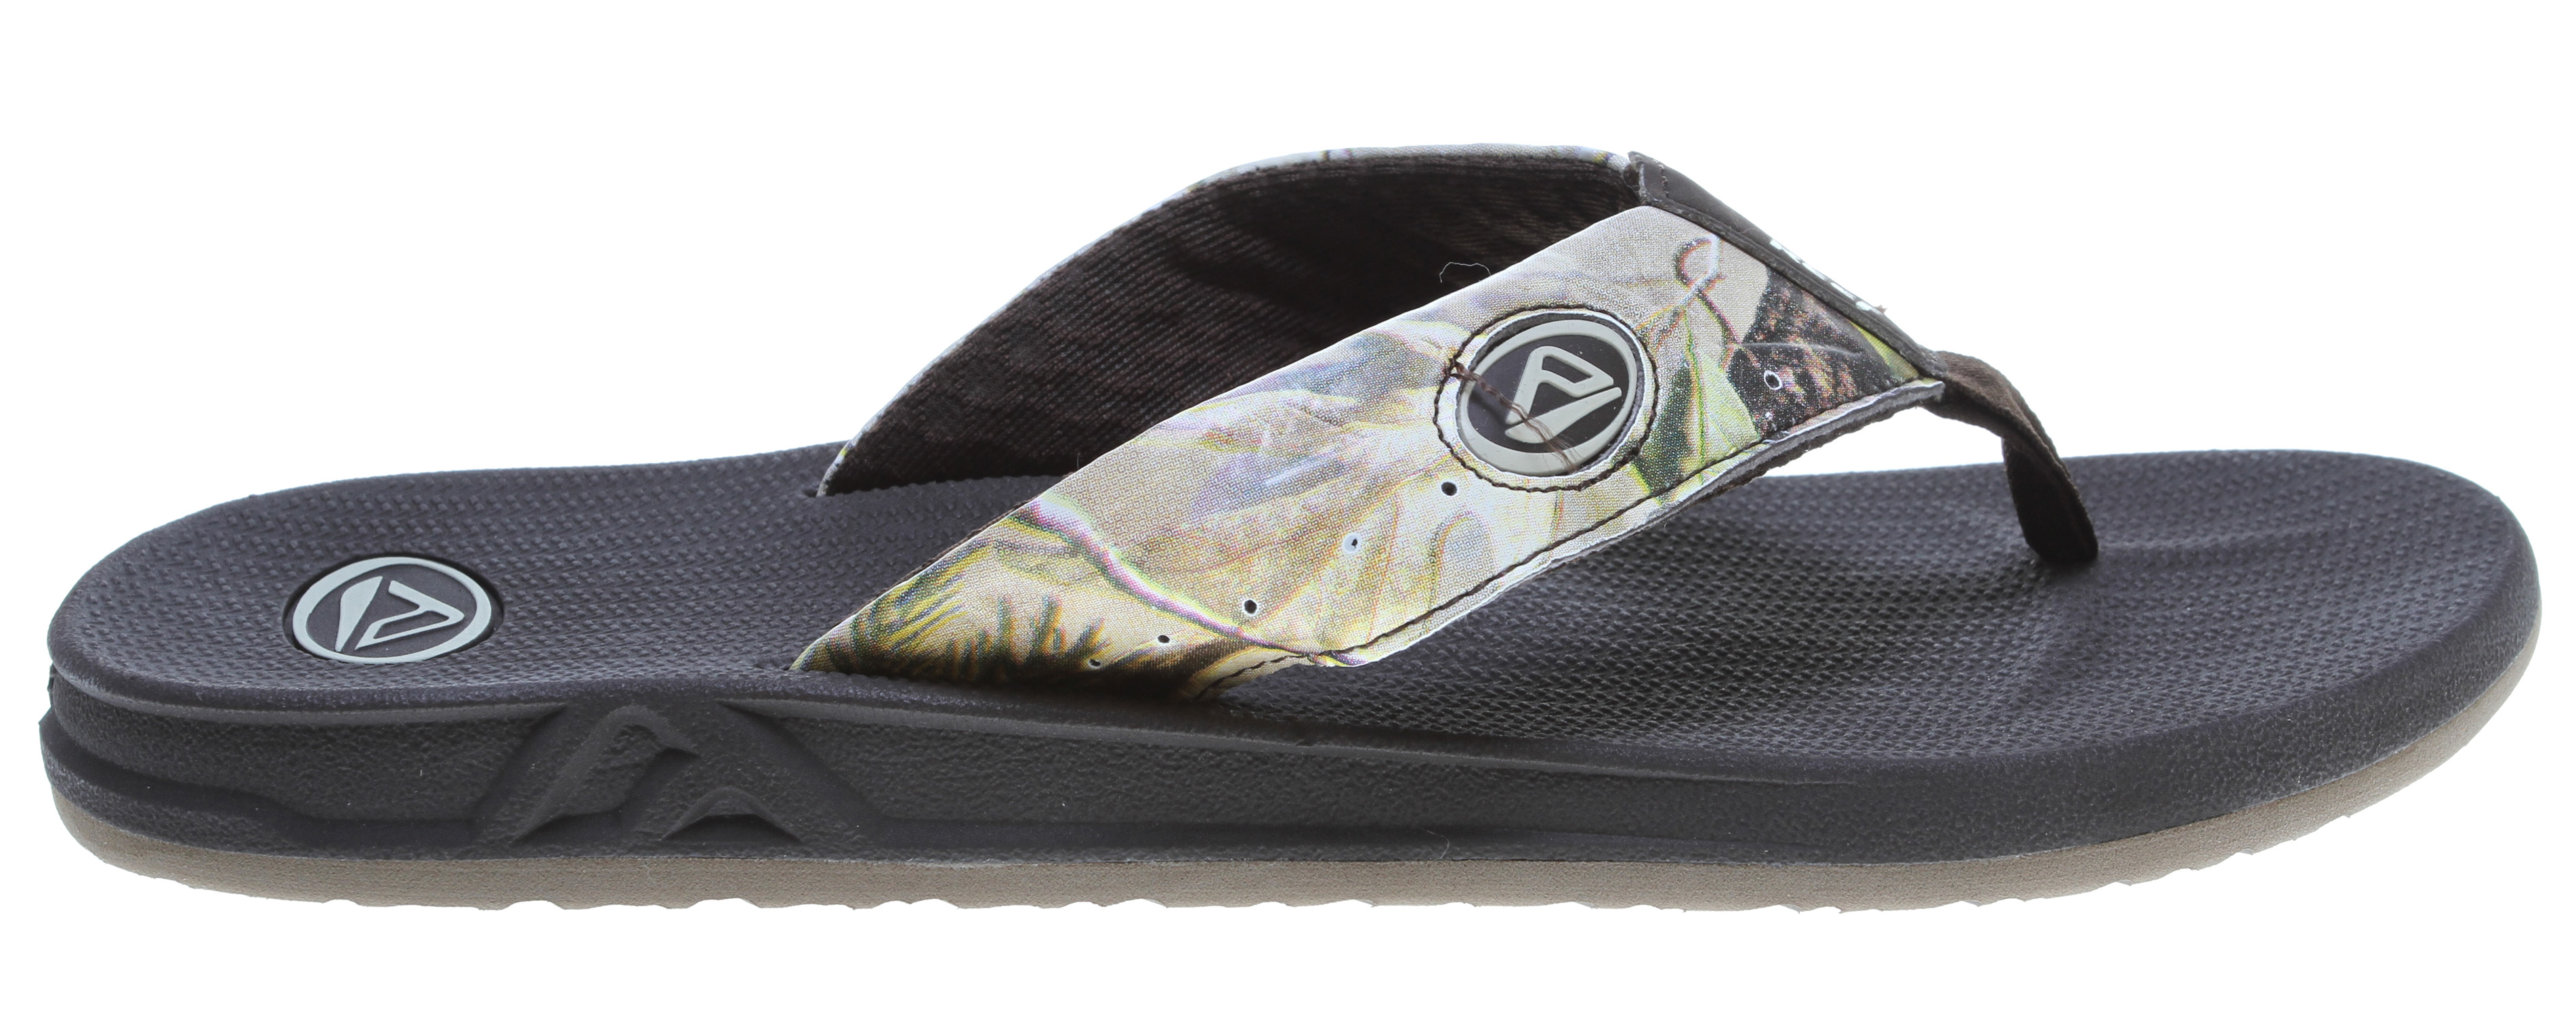 "Surf Key Features of the Reef Sandals Realtree: Original genuine realtree camouflage print Comfortable, water friendly synthetic nubuck upper Molded tpu side trap design detail with logo Contoured compression molded eva footbed with anatomical arch support Full 360 degree heel airbag enclosed in soft polyurethane Church key to open your ""soda"" bottle Select colorways have translucent outsole design features Reef icon herringbone rubber outsole - $38.95"